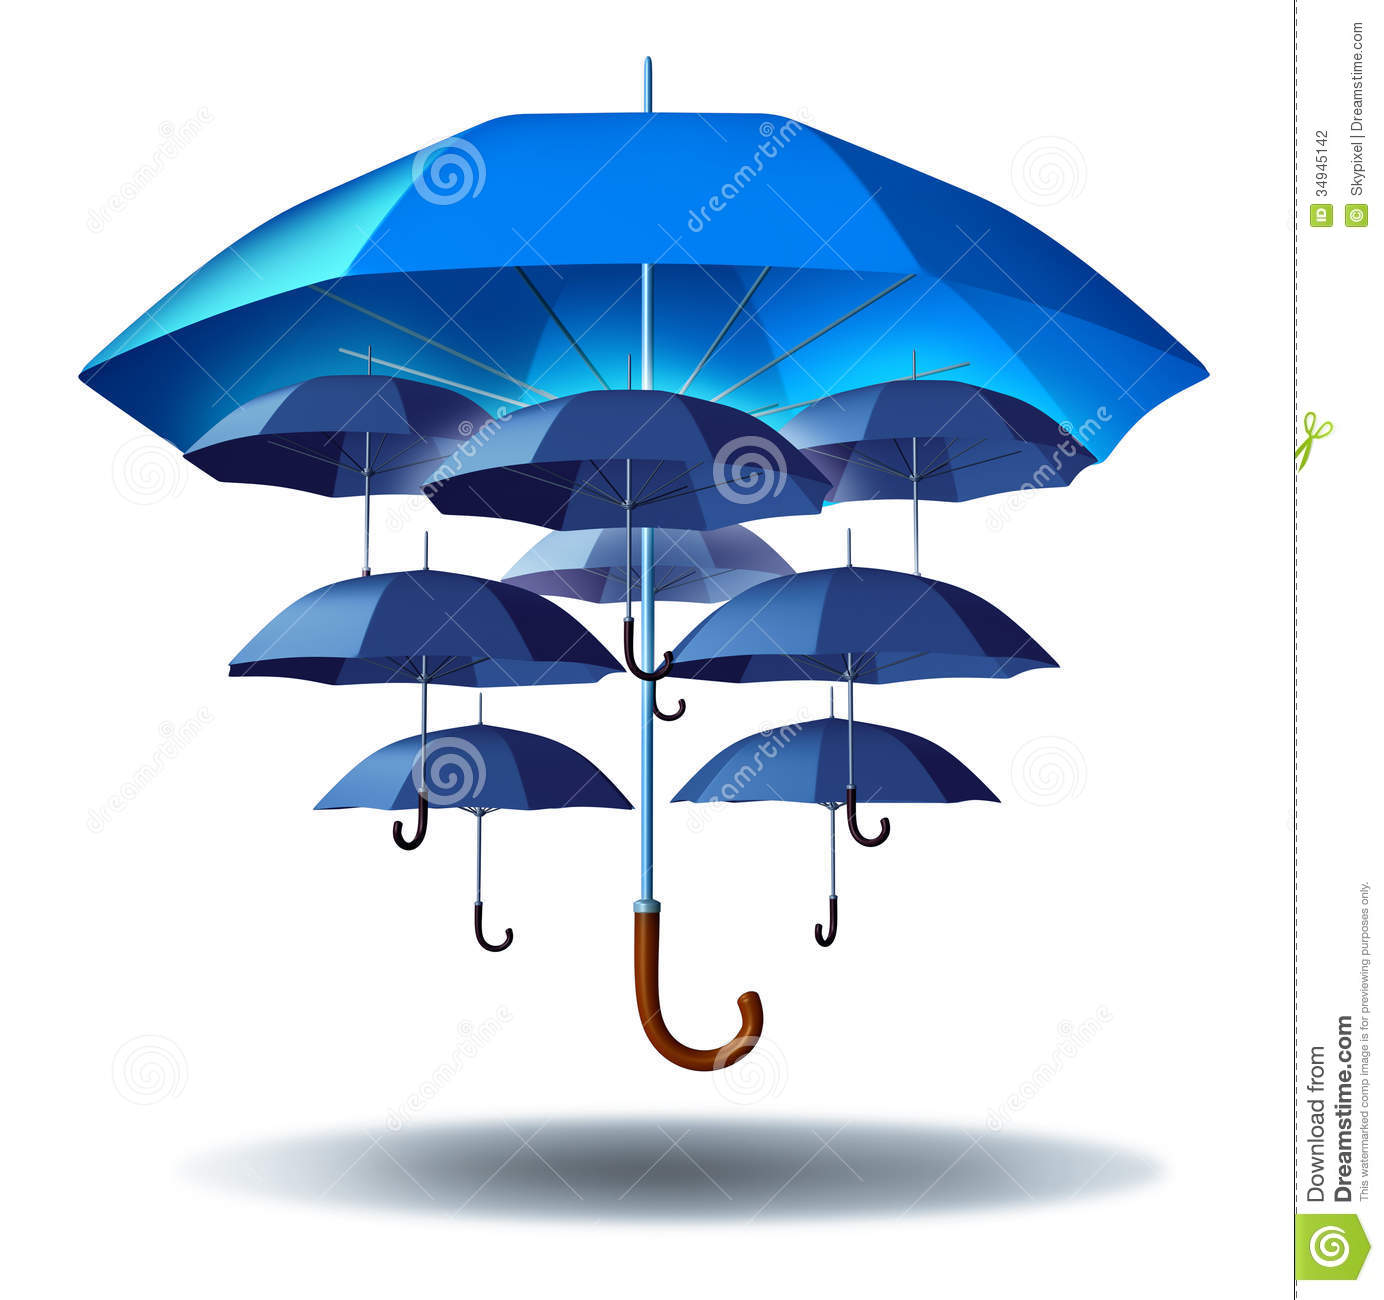 Business group protection stock illustration image of plan 34945142 - Paraplu balances ...